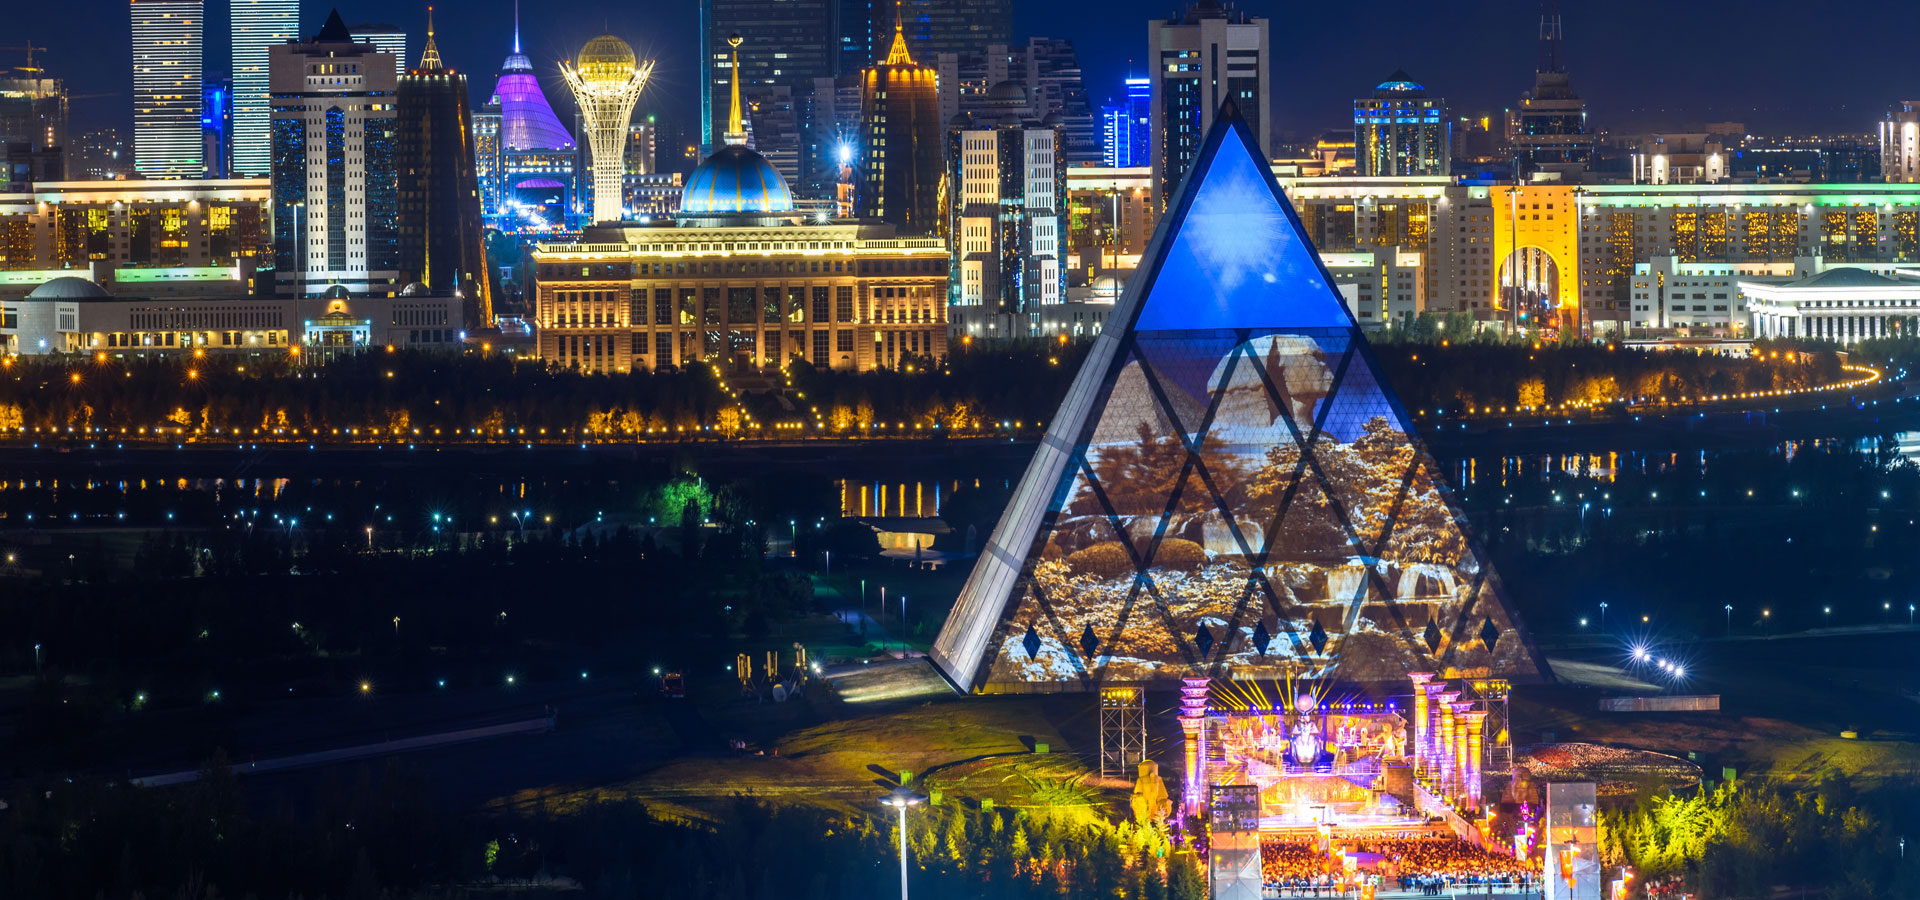 Pyramid and skyline of Astana